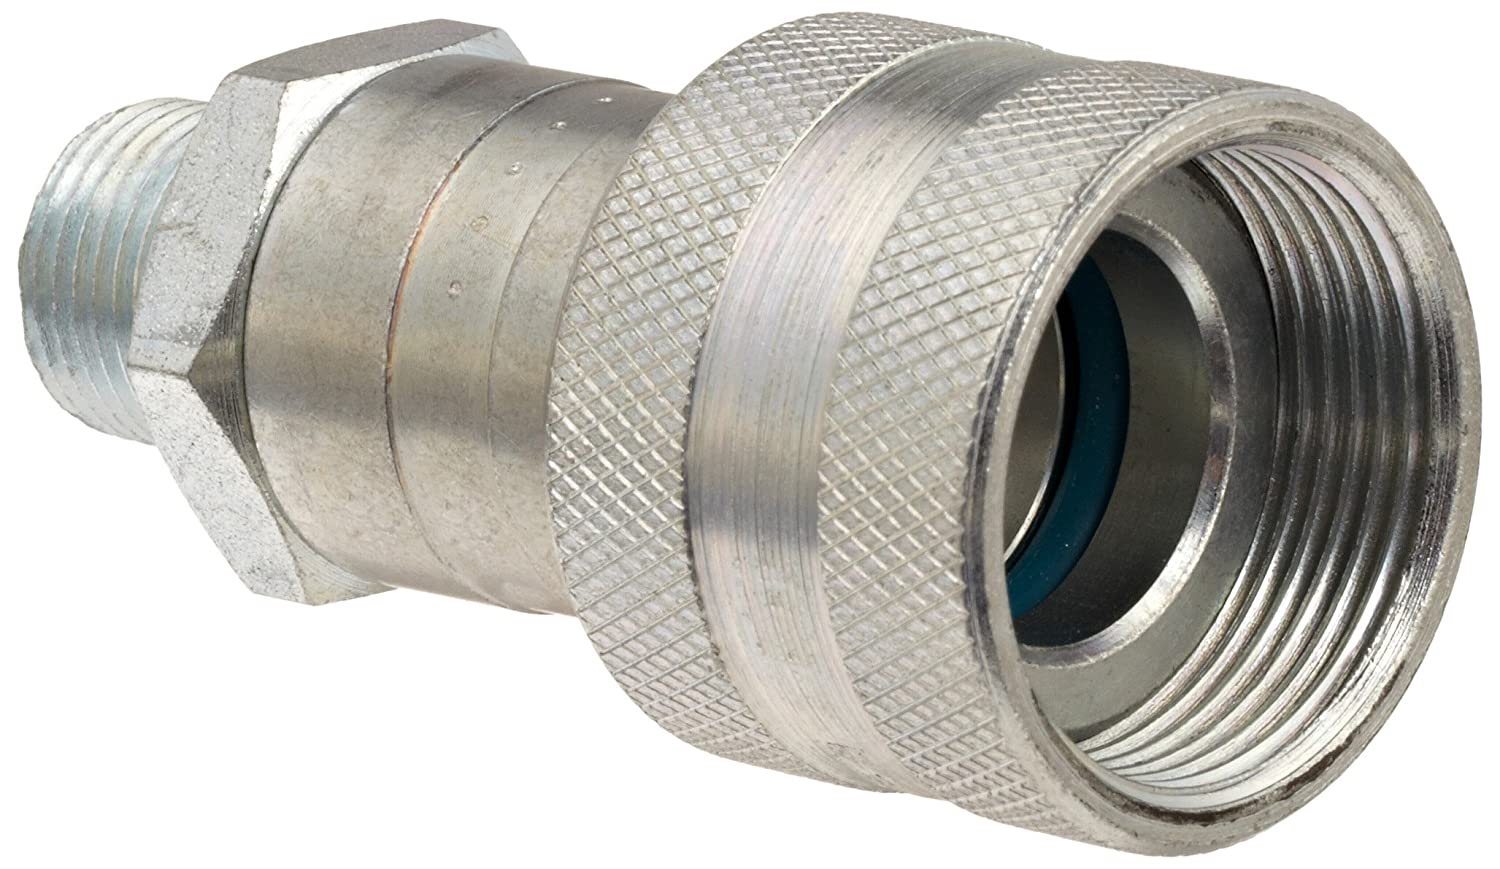 Dixon 30-300 Steel Hydraulic Quick-Connect Fitting 3//8 Male Coupling x 3//8-18 NPT Male Coupler